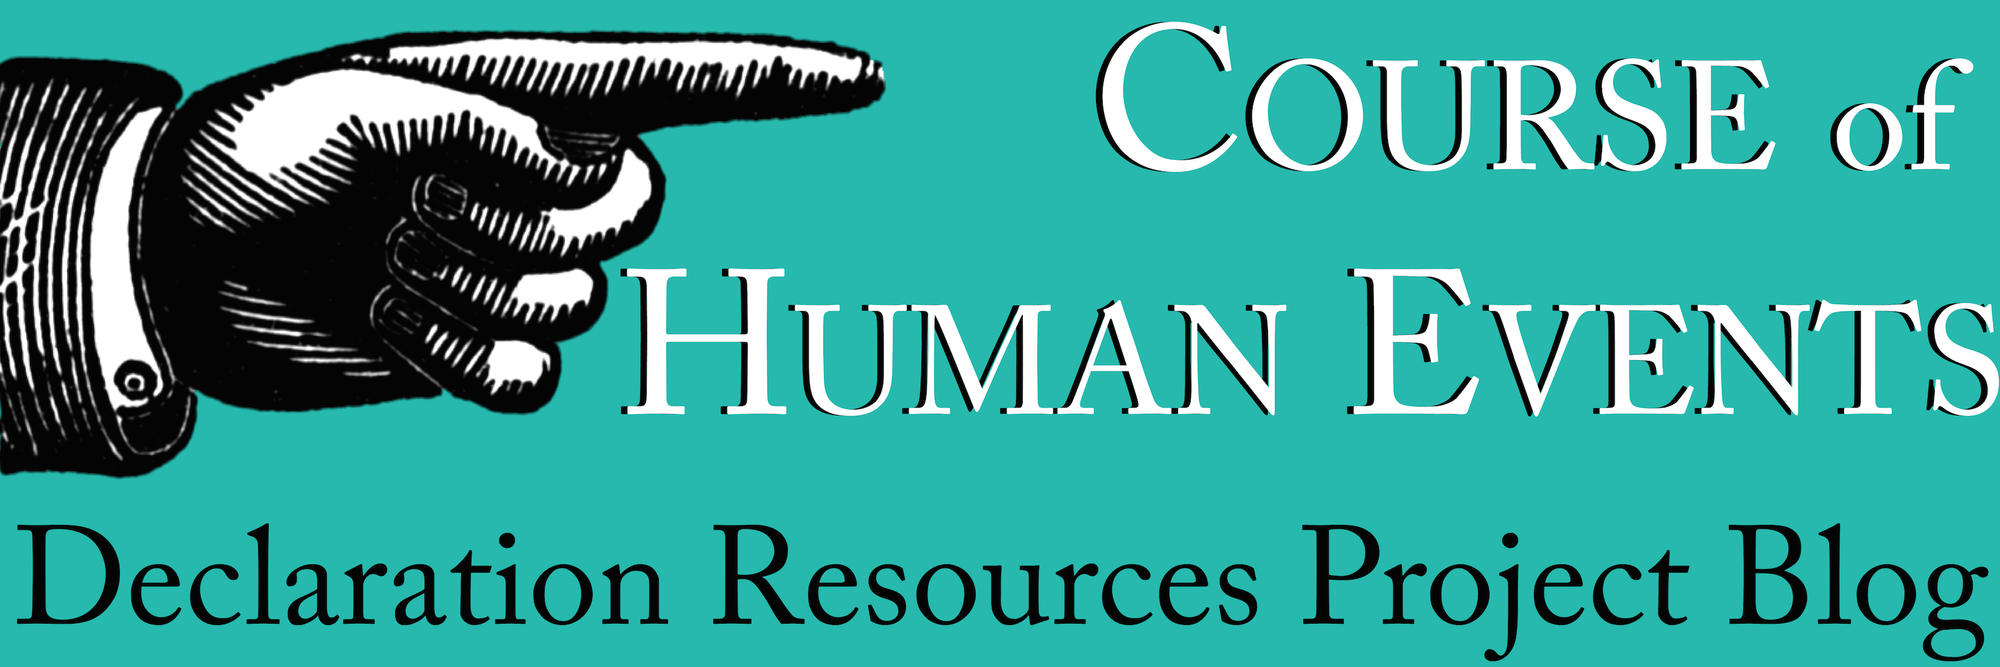 Course of Human Events Logo